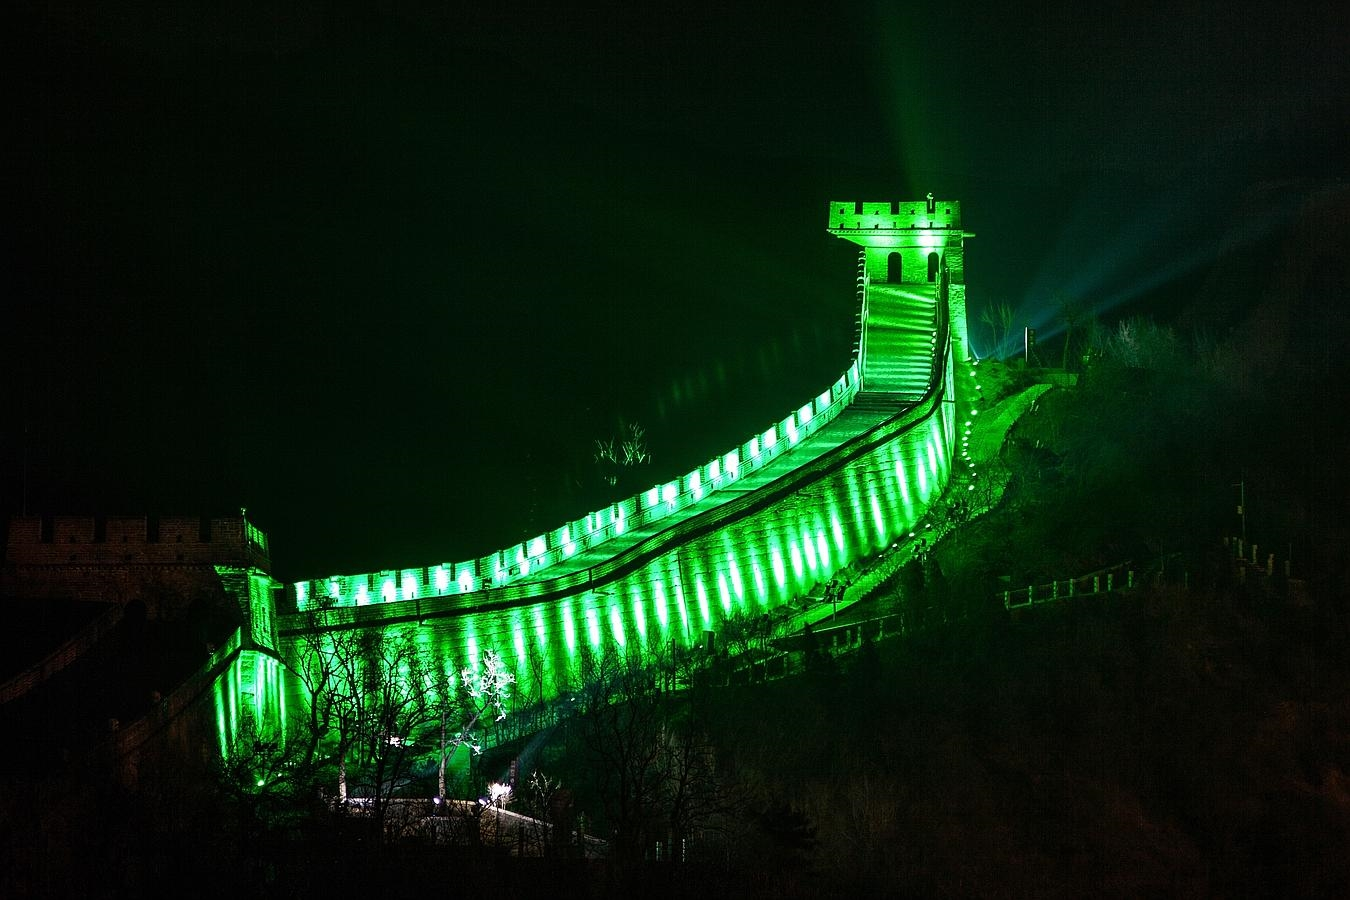 REPRO FREE 16/03/2015, China – Tourism Ireland's annual Global Greening initiative, to celebrate the island of Ireland and St Patrick, has gone from strength to strength – from its beginning in 2010, with just the Sydney Opera House going green, to this year, when about 150 landmark buildings and iconic sites across the world will turn a shade of green for our national day. PIC SHOWS: The Great Wall of China joins Tourism Ireland's Global Greening, to celebrate the island of Ireland and St Patrick. Pic – Tourism Ireland (no repro fee) Further press info – Sinéad Grace, Tourism Ireland 087 685 9027